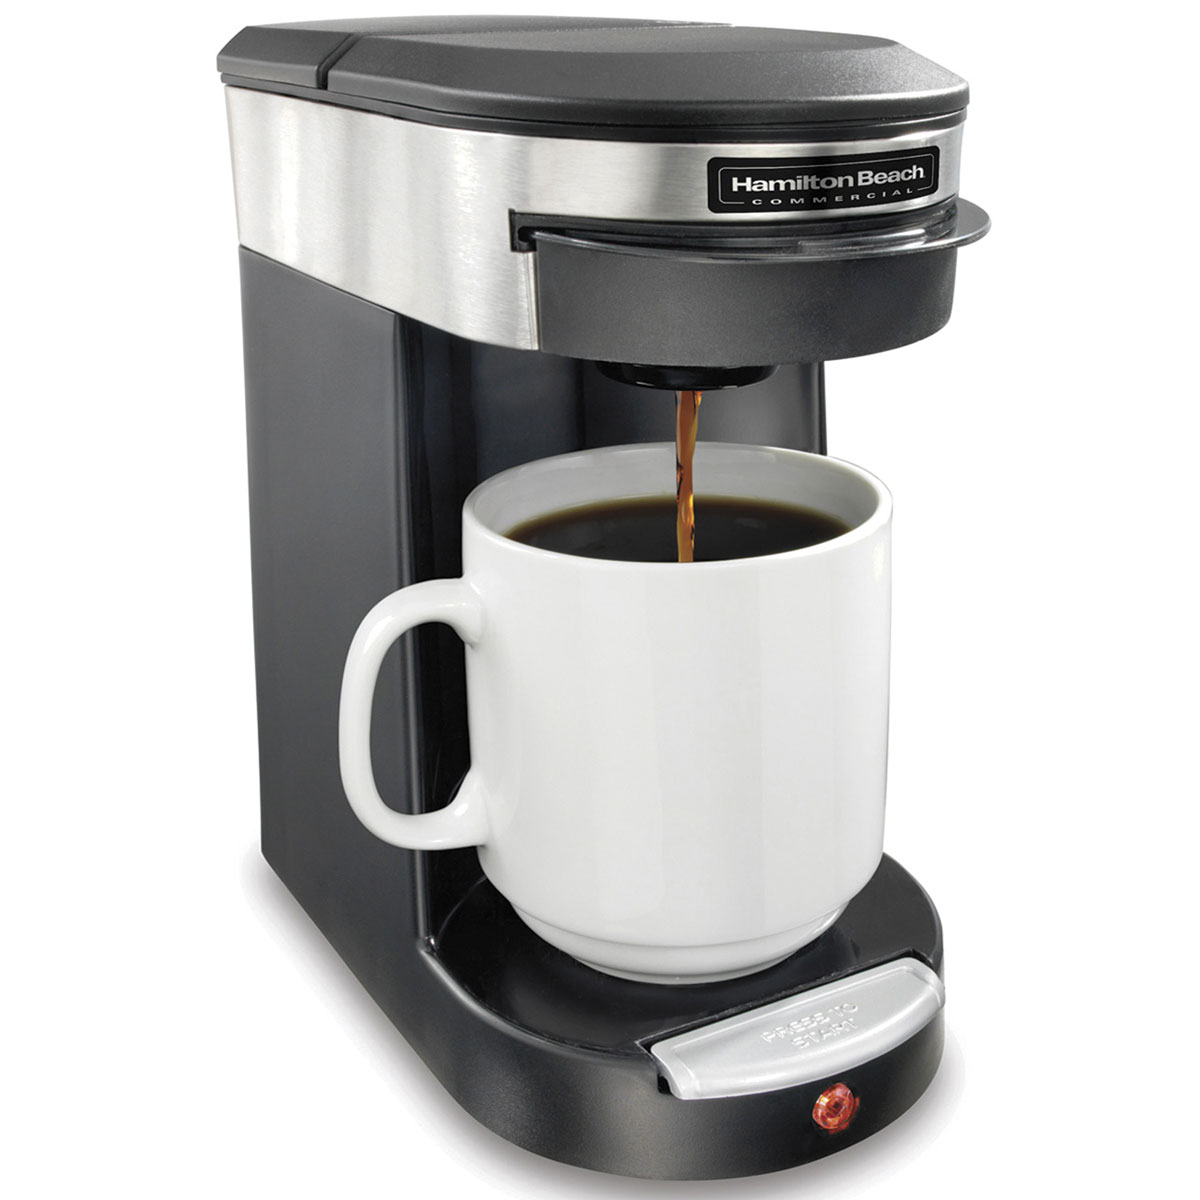 One Cup Stainless Steel Coffee Maker : Hamilton Beach Commercial HDC200S Deluxe 1 Cup Pod Coffee Maker w/ ASO Black/Stainless Steel 6 ...